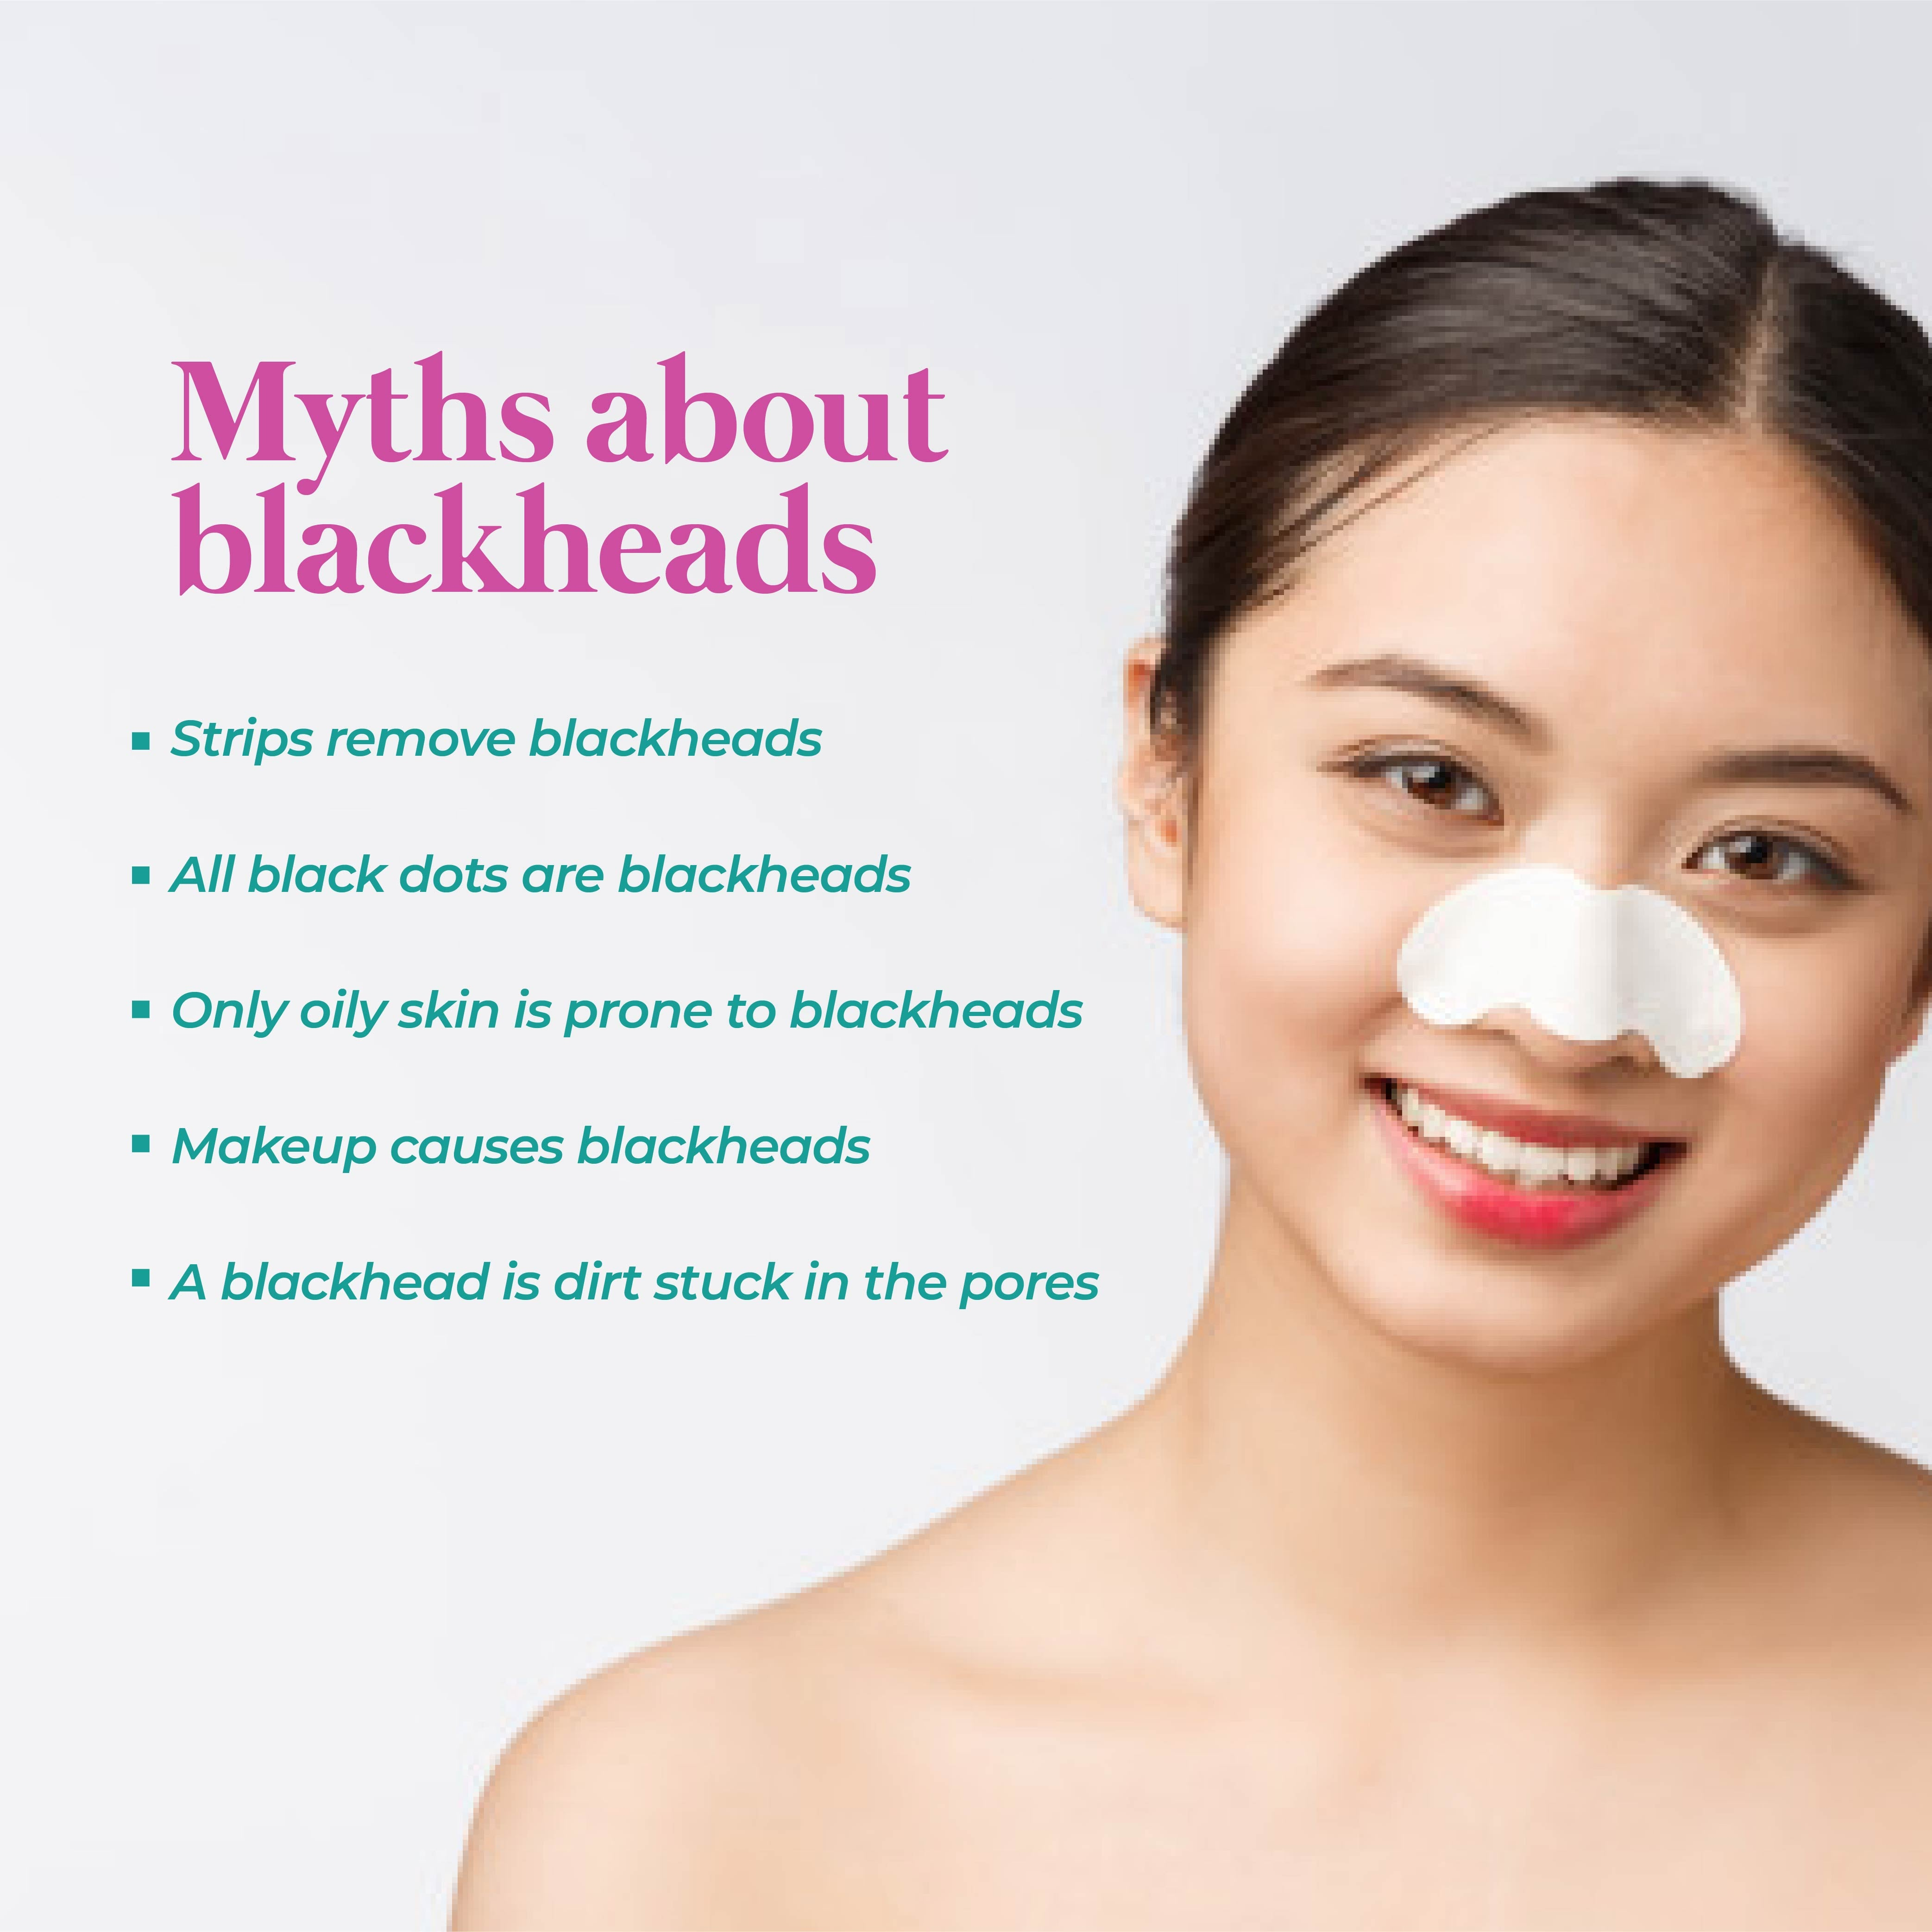 This is an image of the myths about blackheads